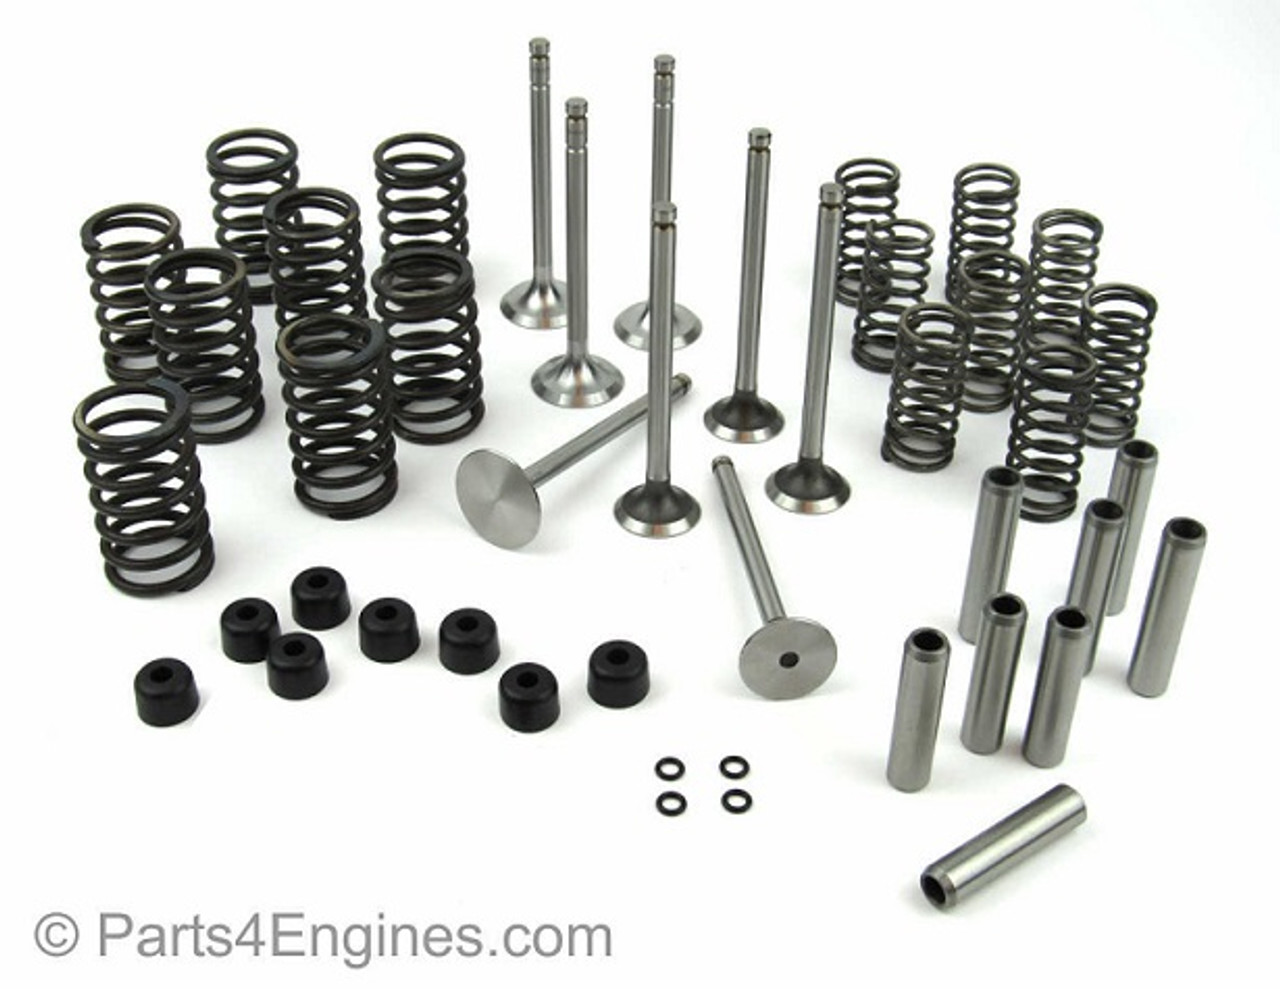 Perkins 4.107 Valve train kit from Parts4Engines.com